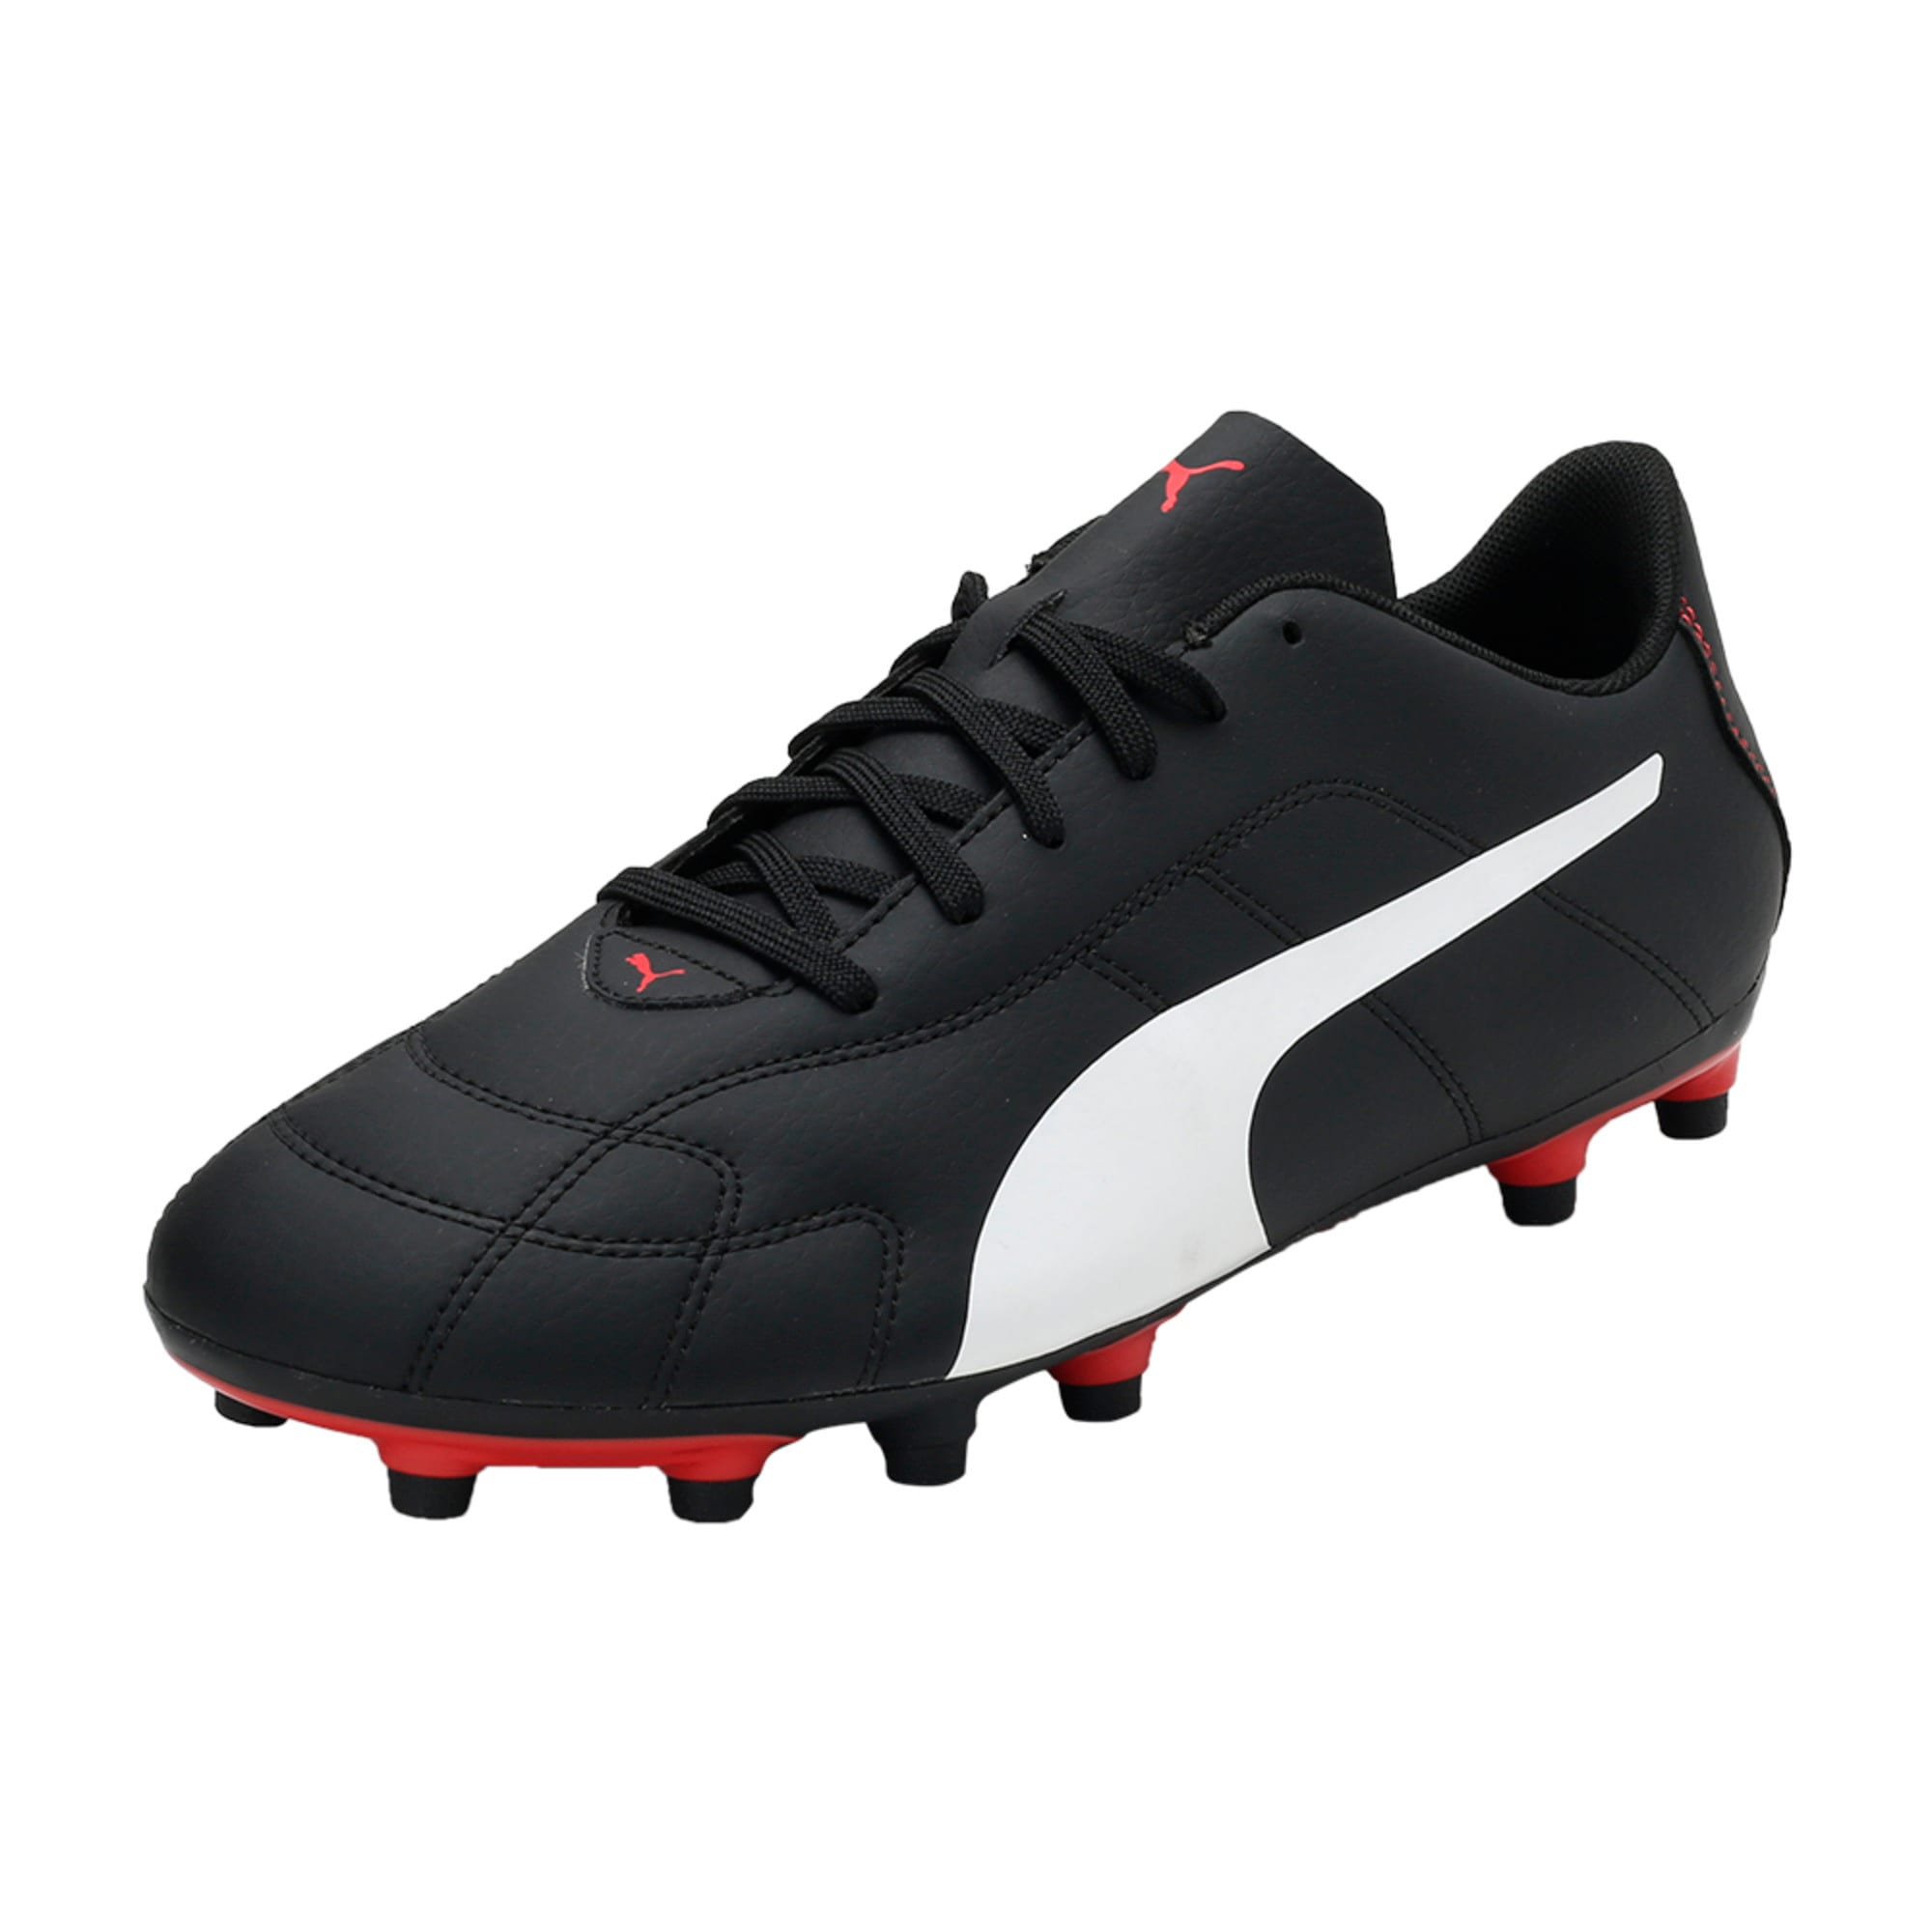 Thumbnail 1 of Classico C Firm Ground Men's Football Boots, Black-White-Red, medium-IND